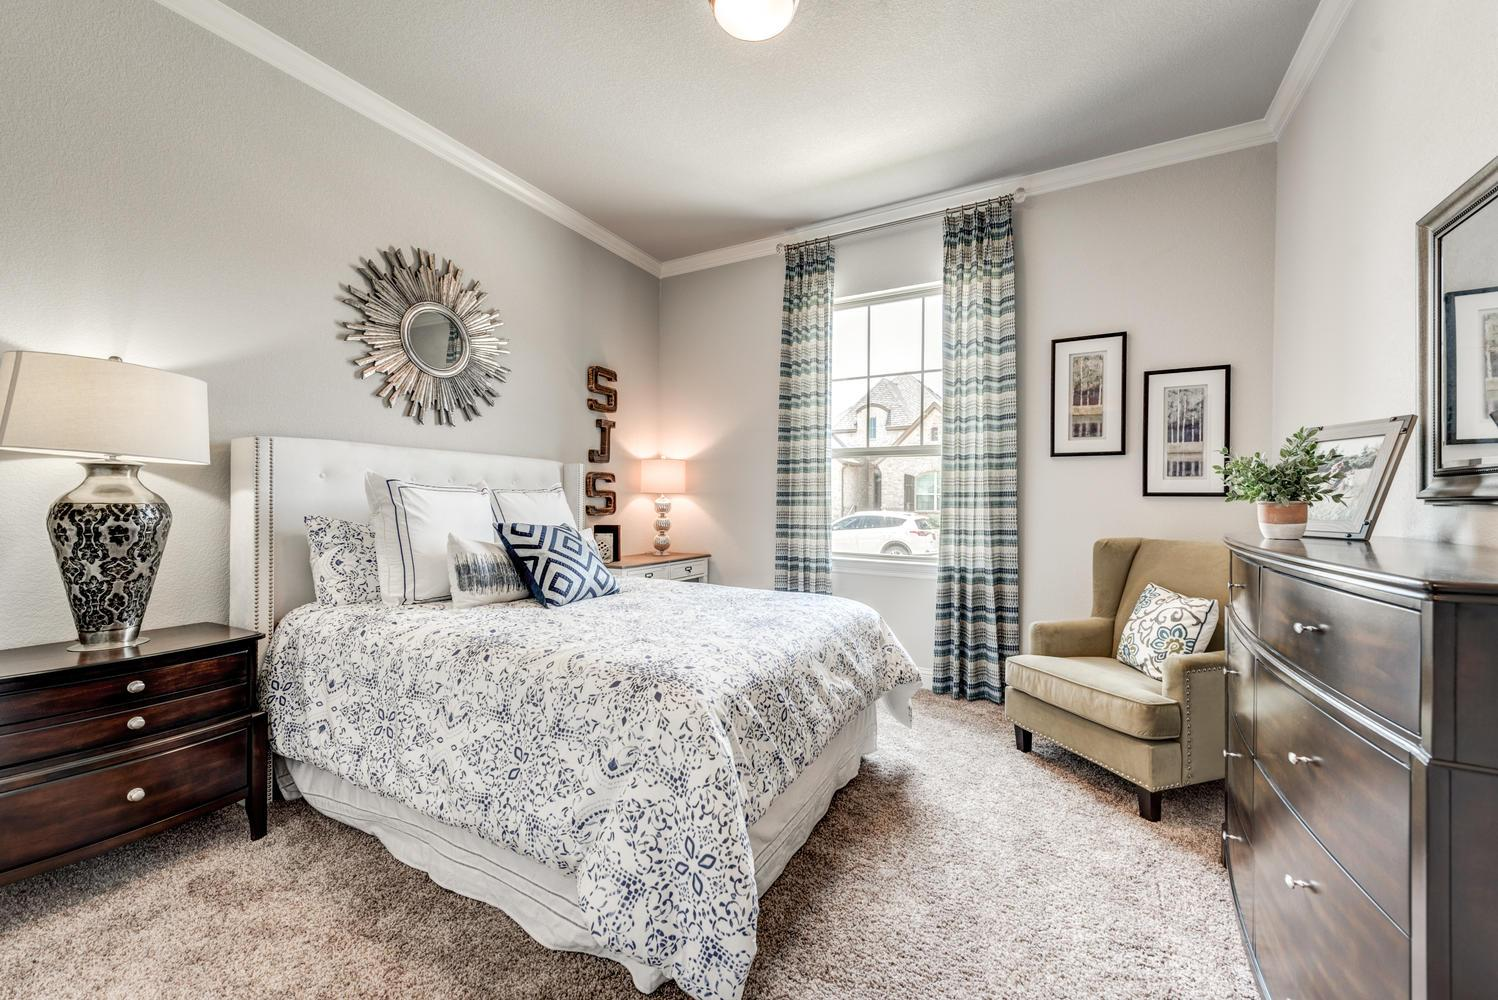 Bedroom featured in the Naples | Villa By Our Country Homes  in Fort Worth, TX